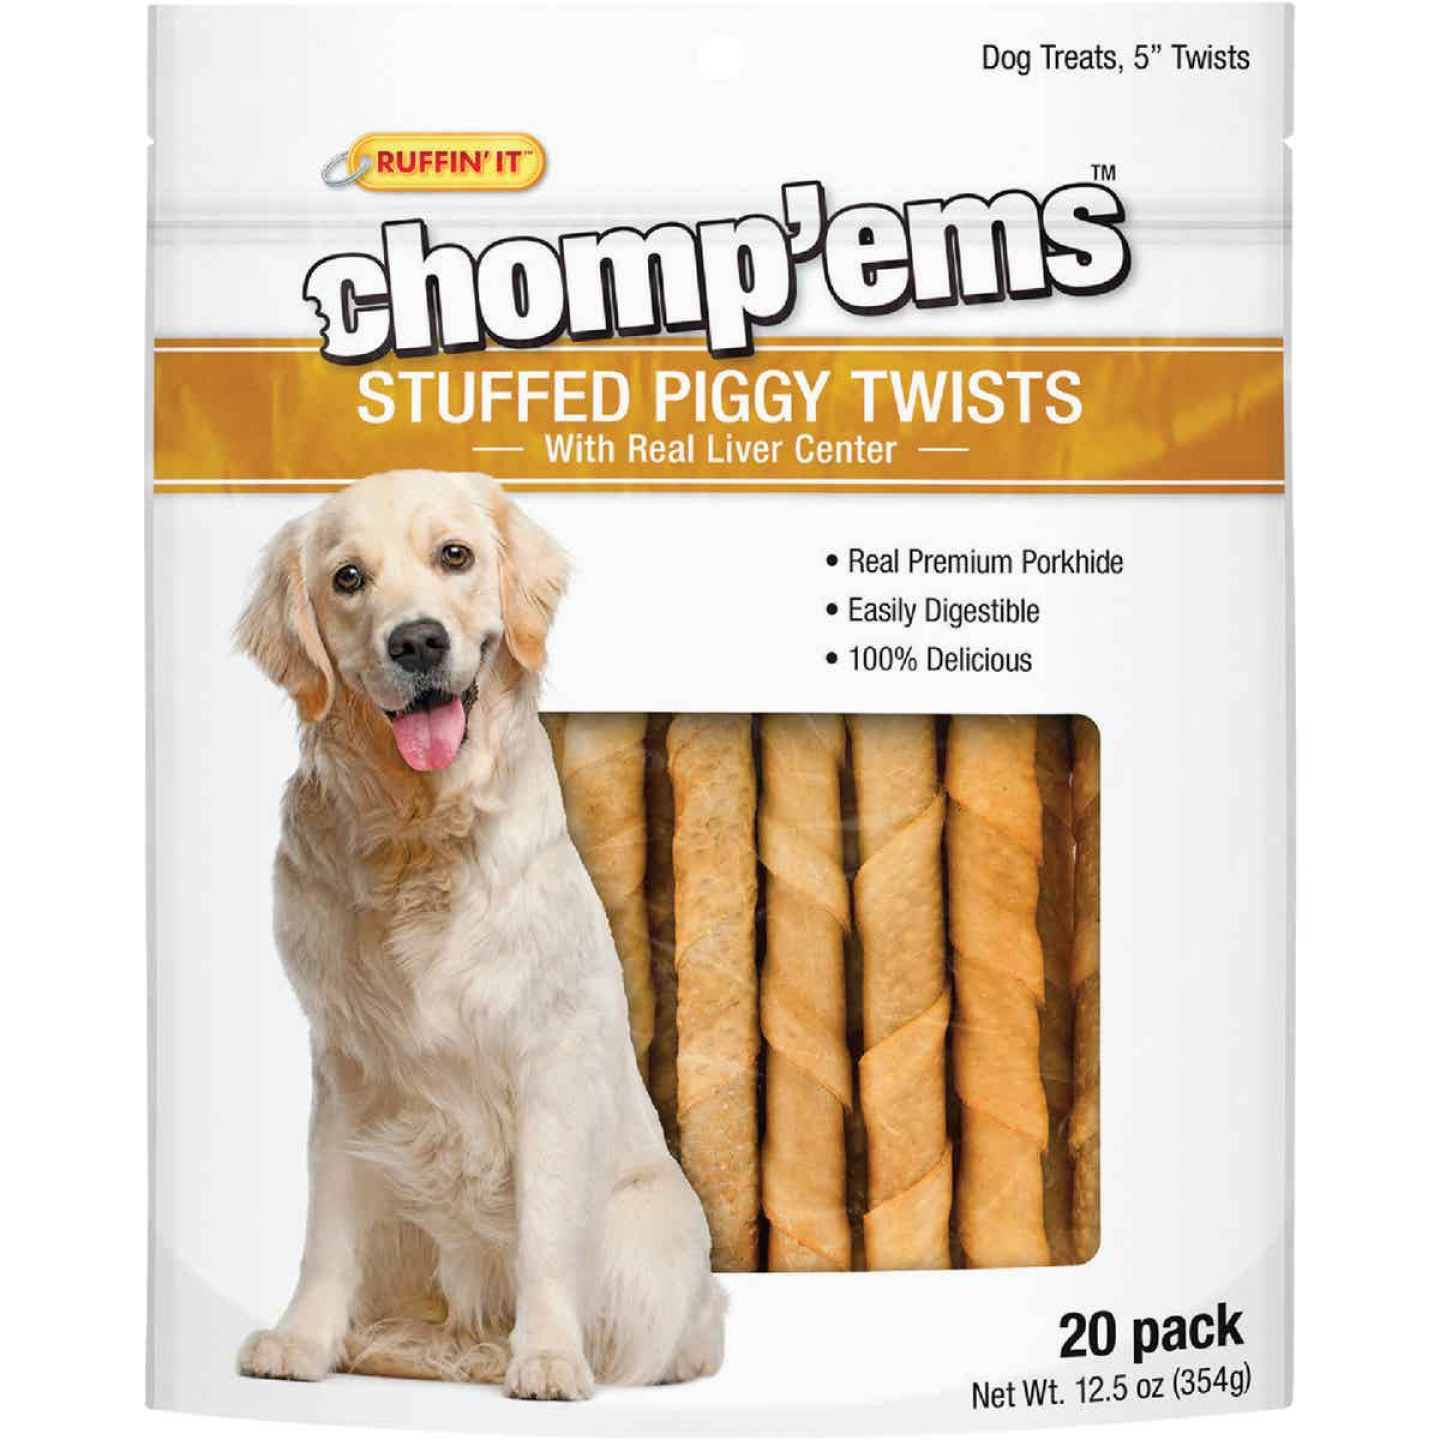 Ruffin' it Chomp'ems Pork Flavor Chewy Dog Treat (20-Pack) Image 1